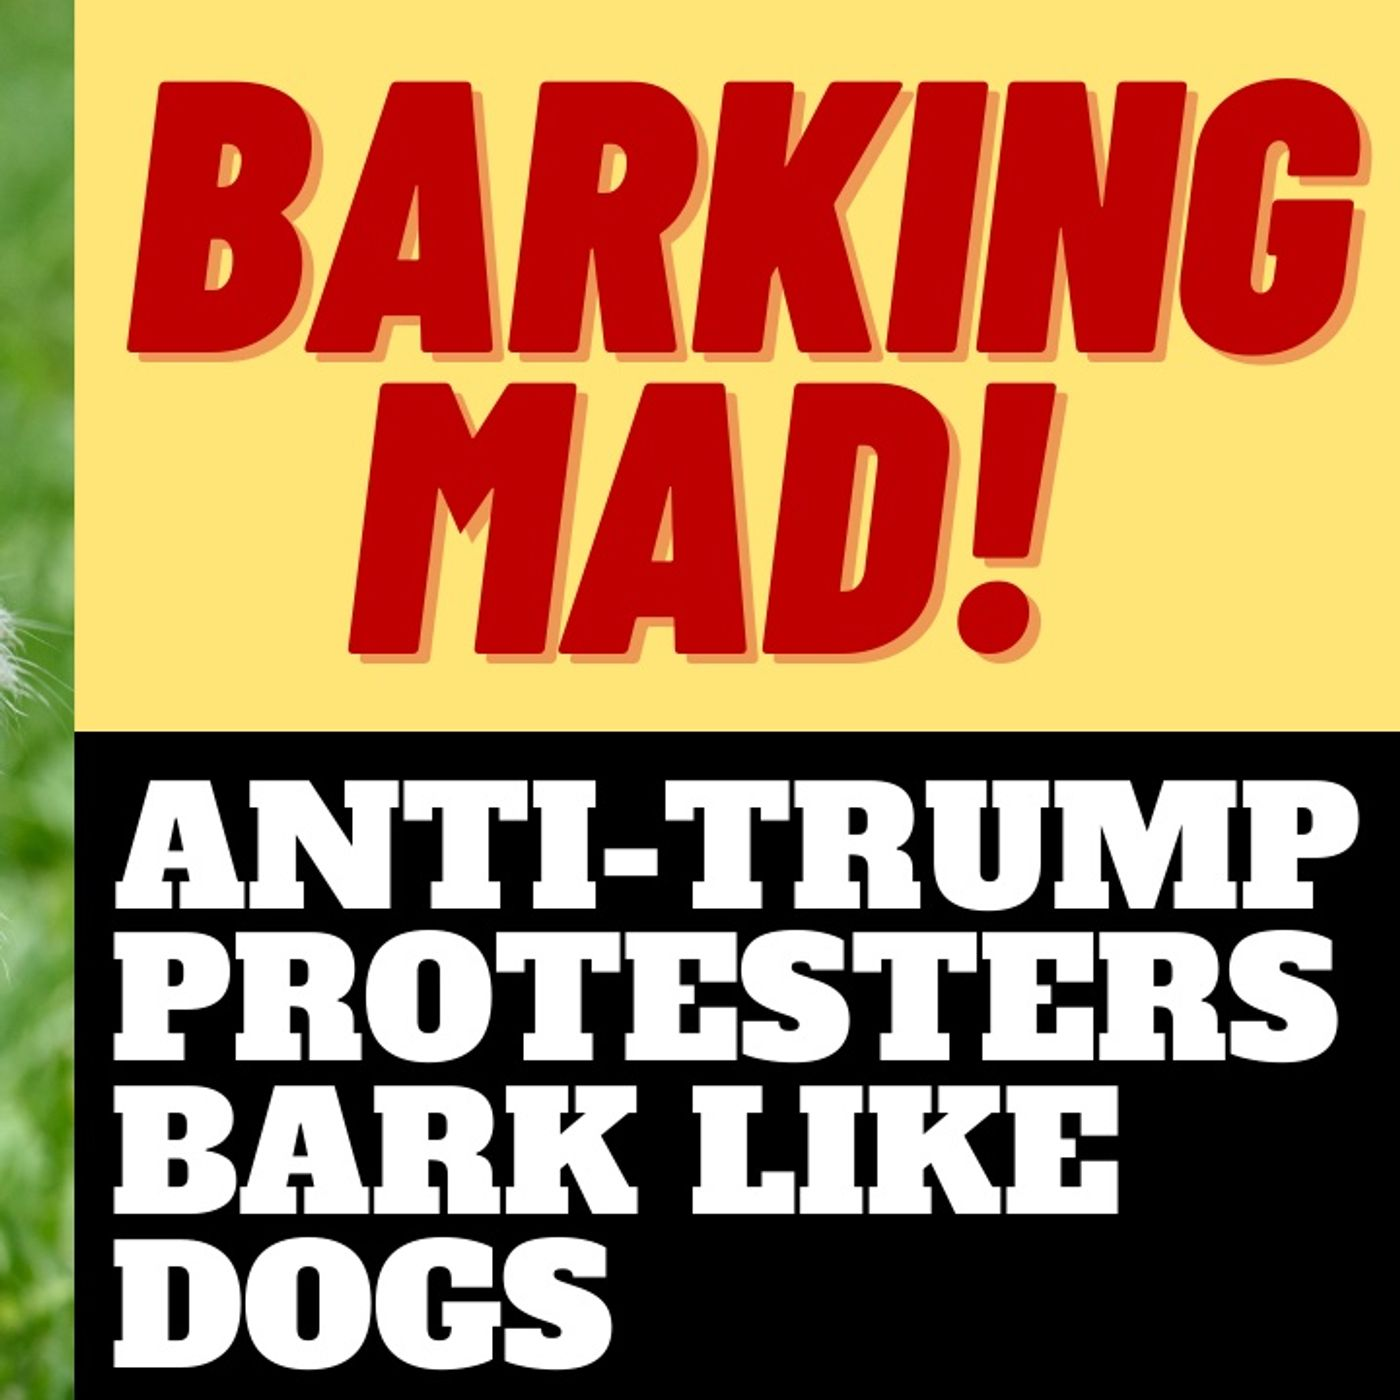 DERANGED ANTI-TRUMP PROTESTERS BARK LIKE DOGS